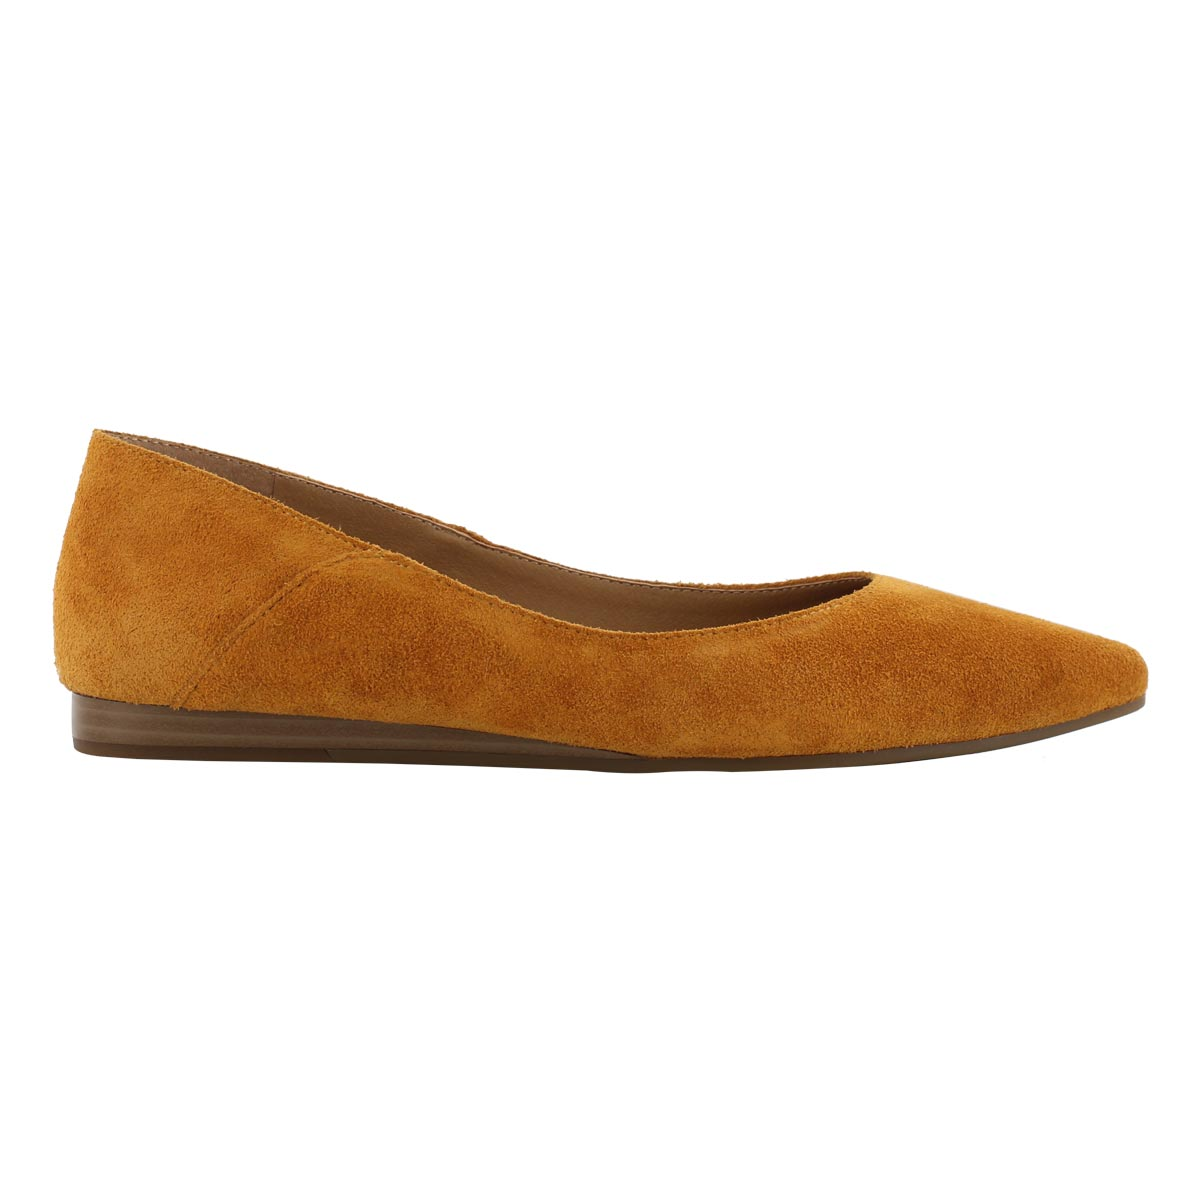 Lds Bylando washed gold flat